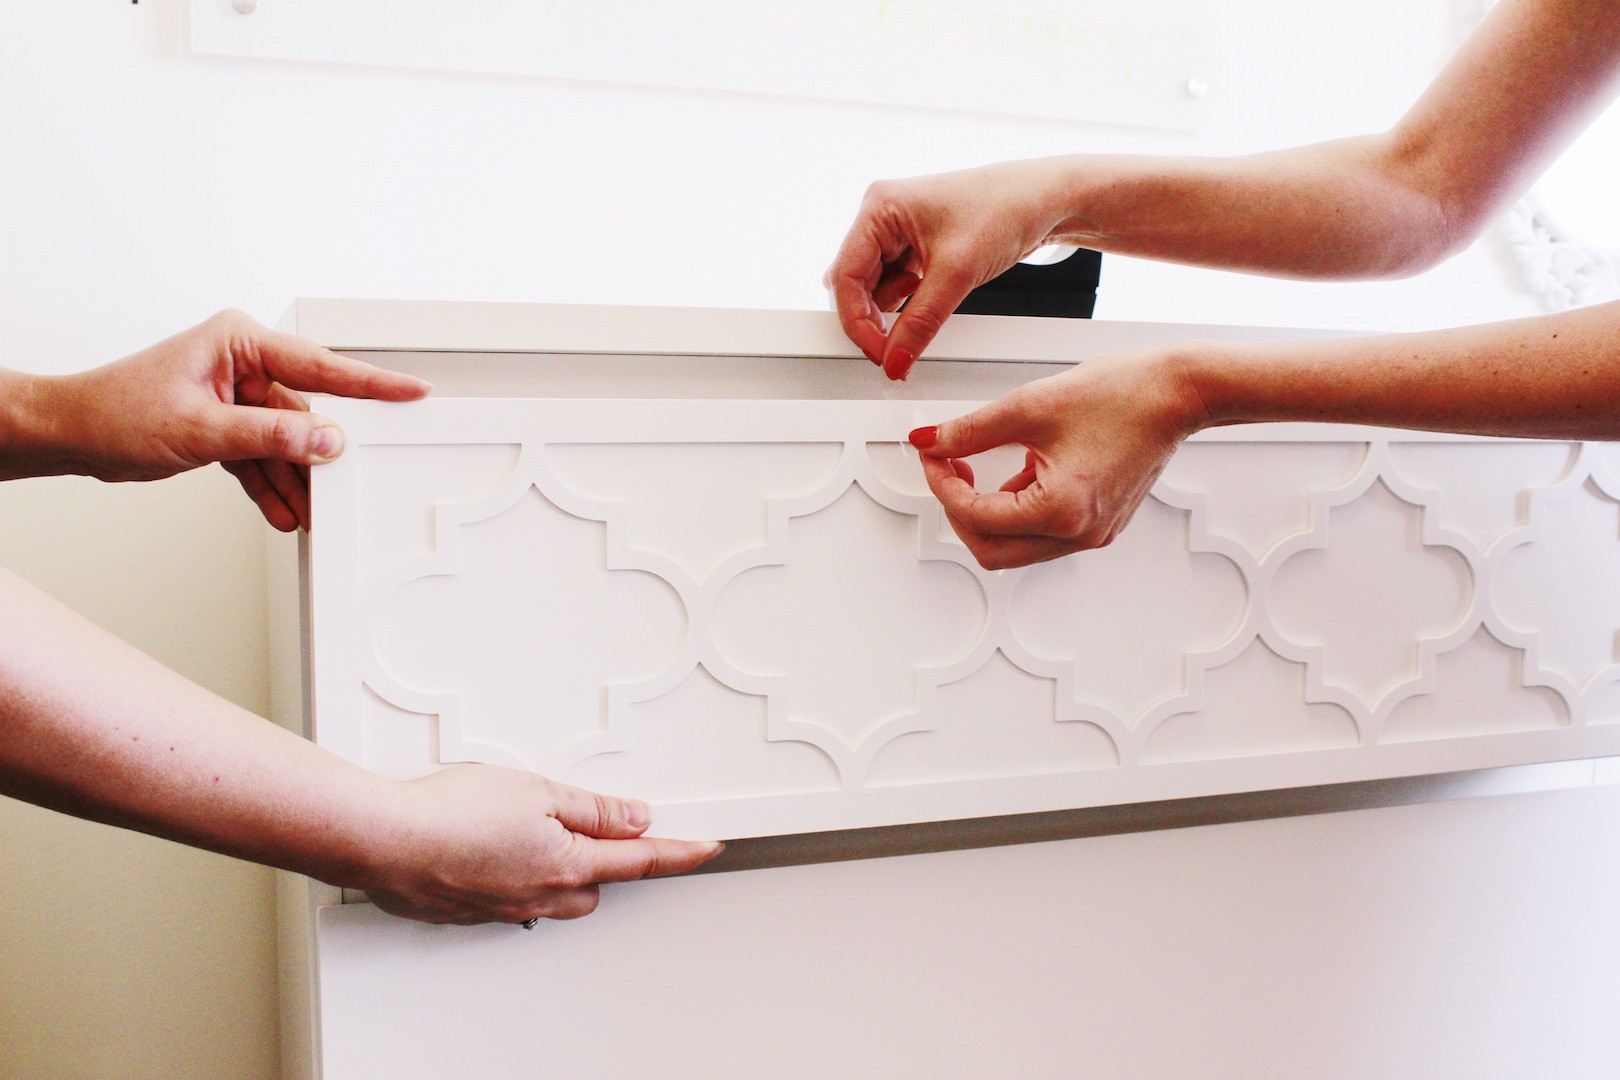 DIY Ikea Dresser Hack | Adhere Panels and Use Tape While Adhesive Dries